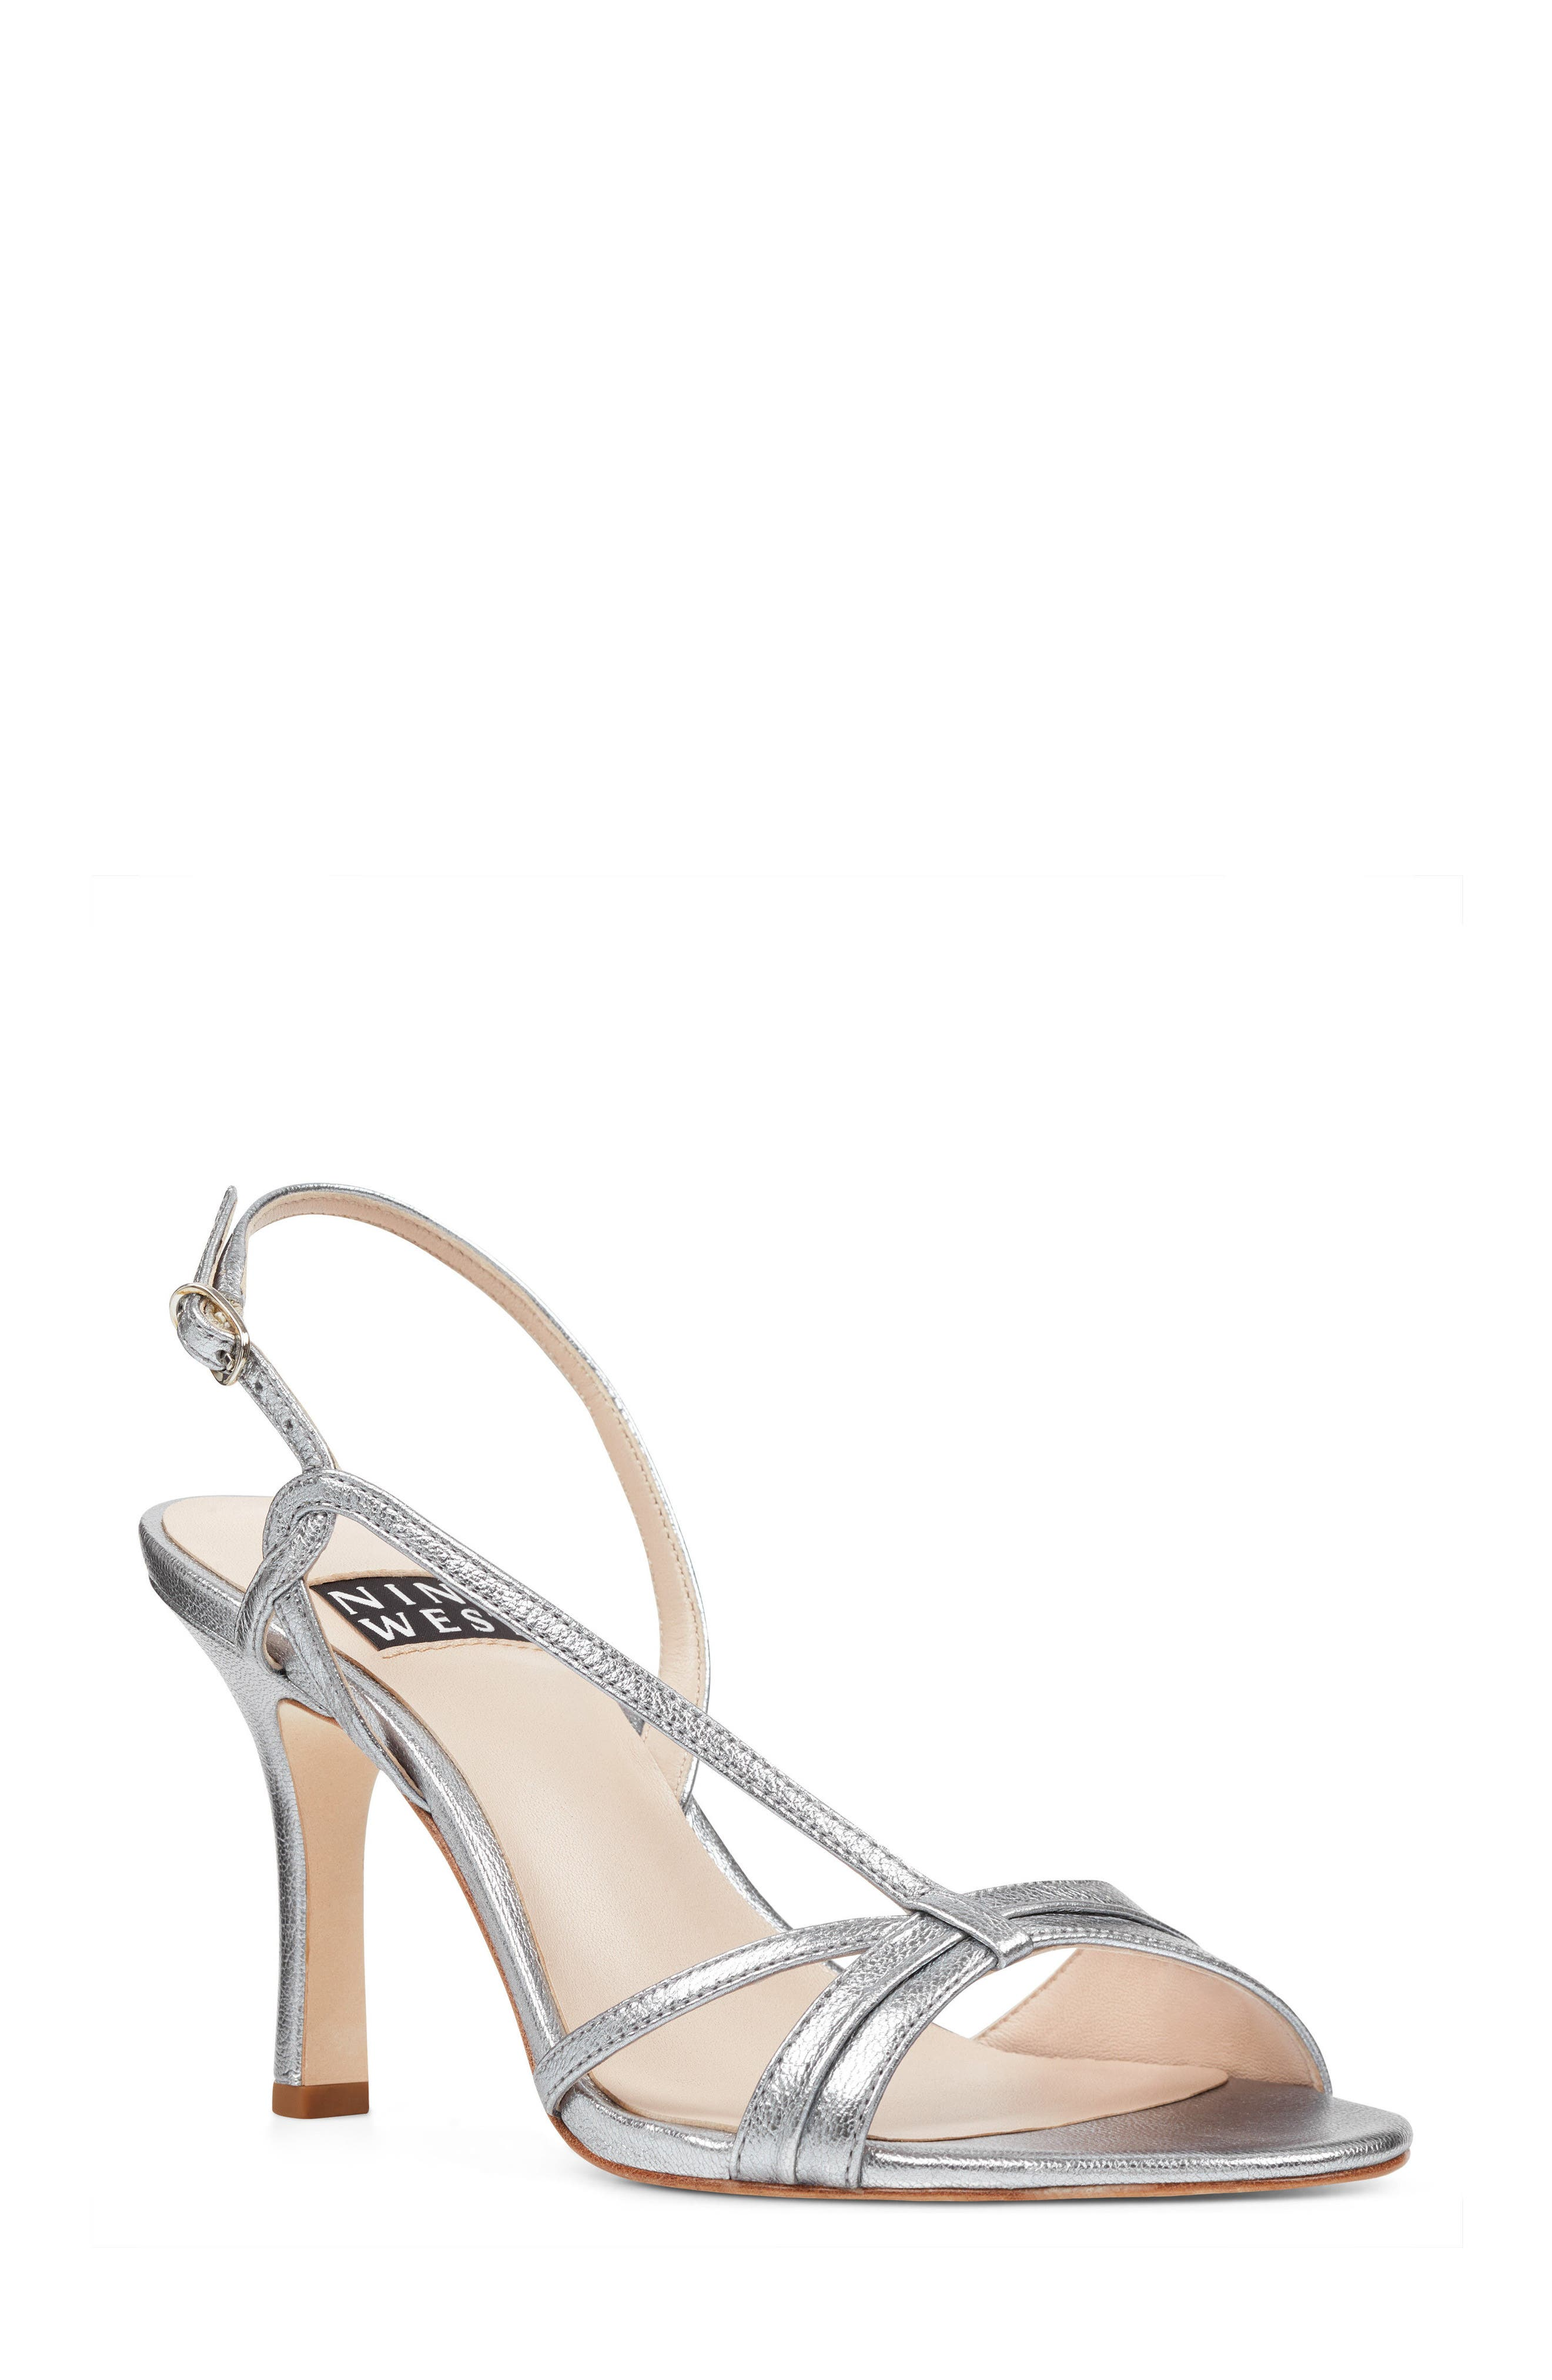 Accolia - 40th Anniversary Capsule Collection Sandal,                             Main thumbnail 1, color,                             SILVER LEATHER